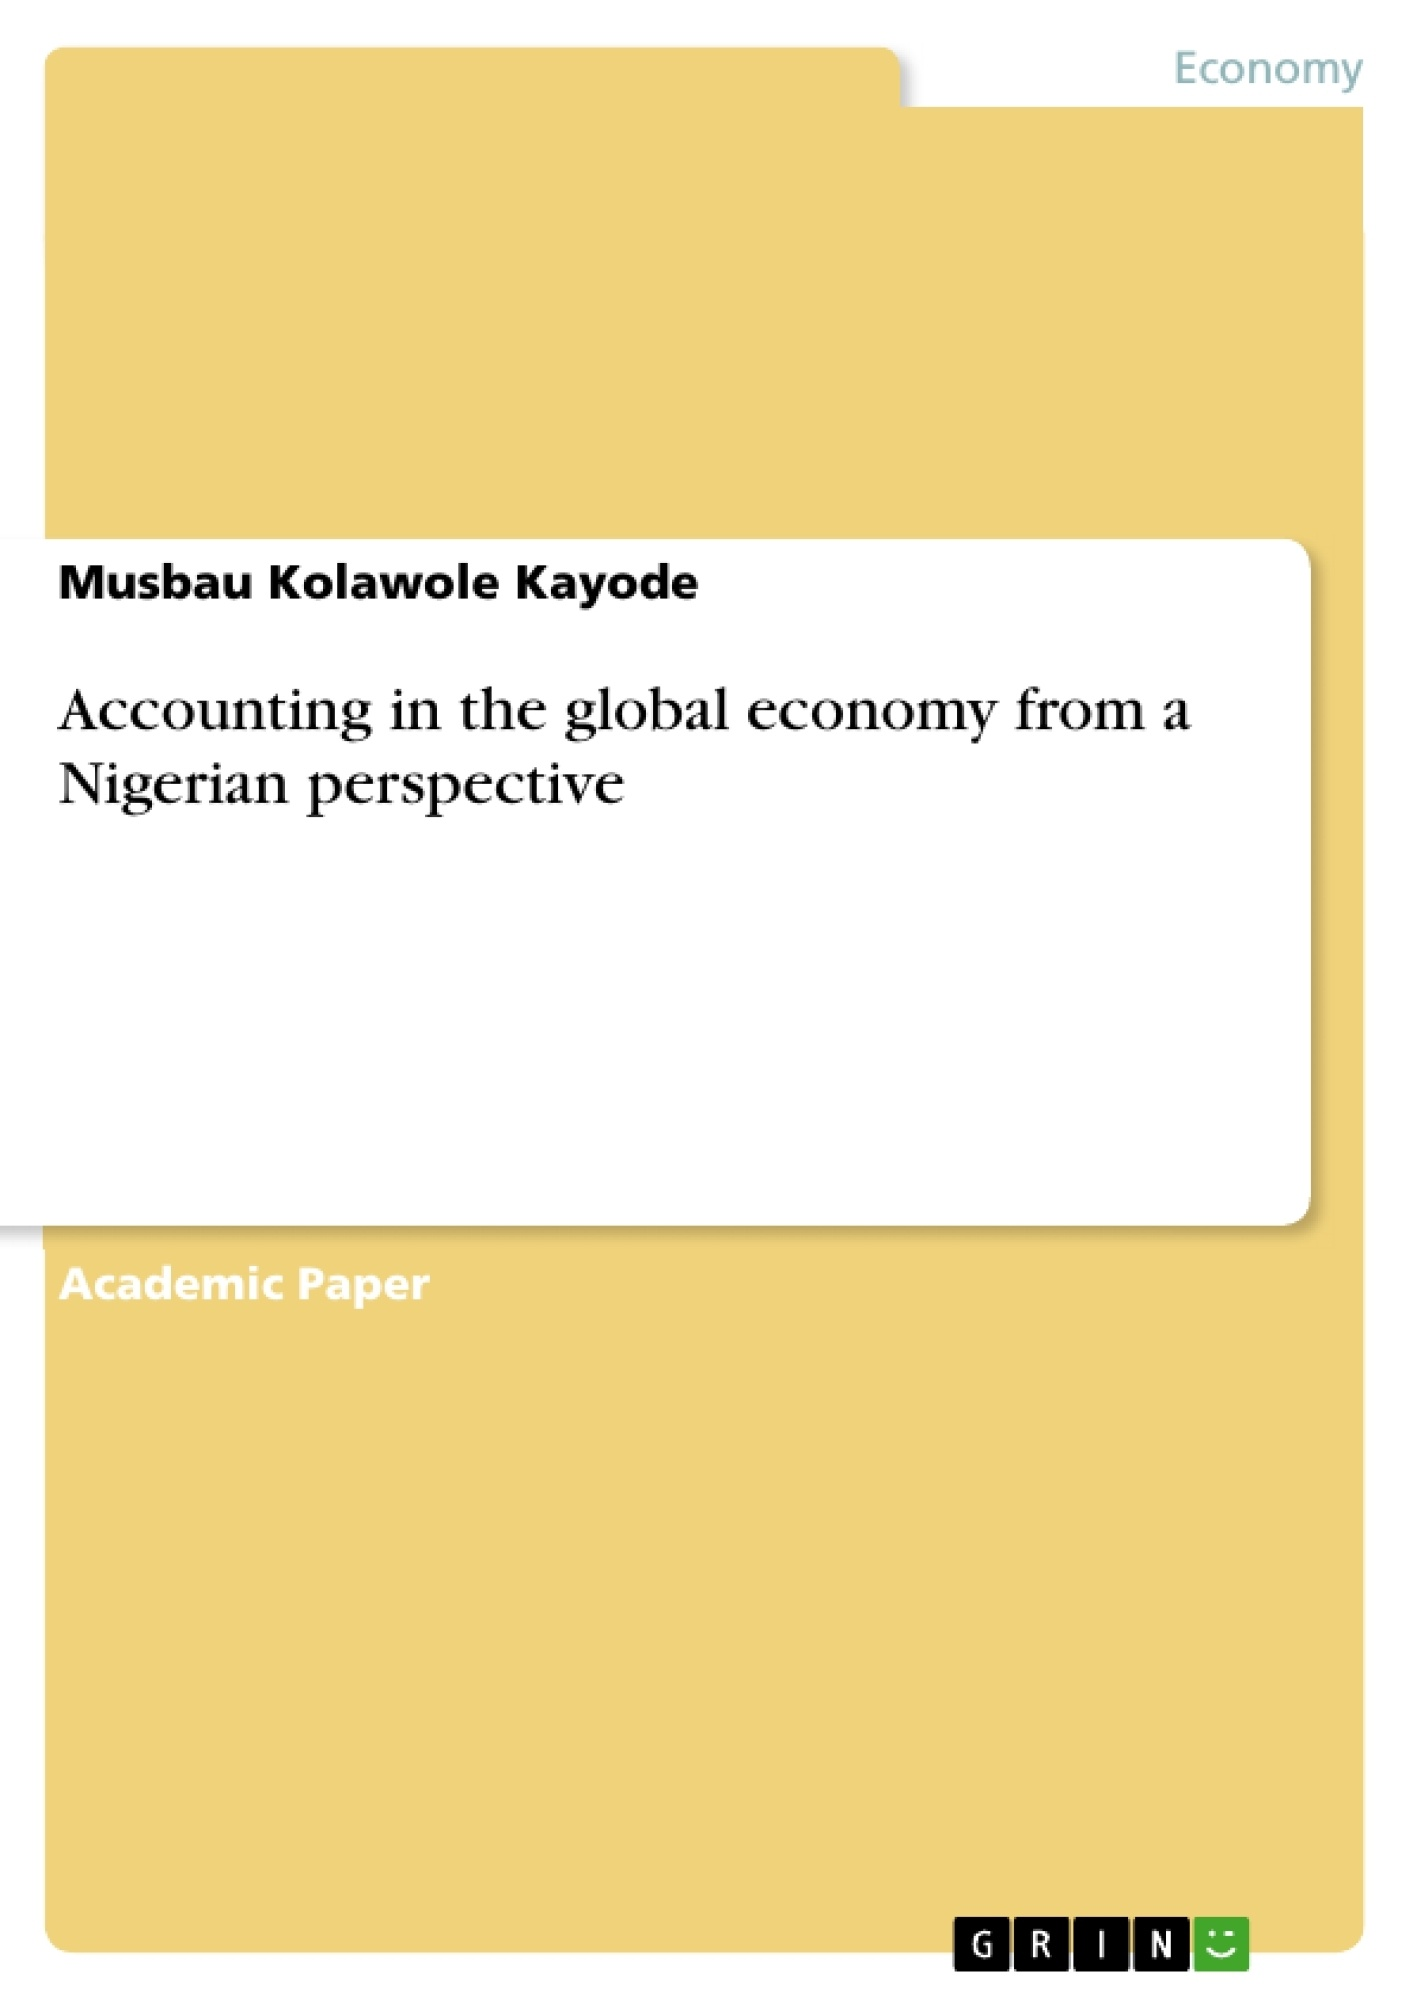 Title: Accounting in the global economy from a Nigerian perspective